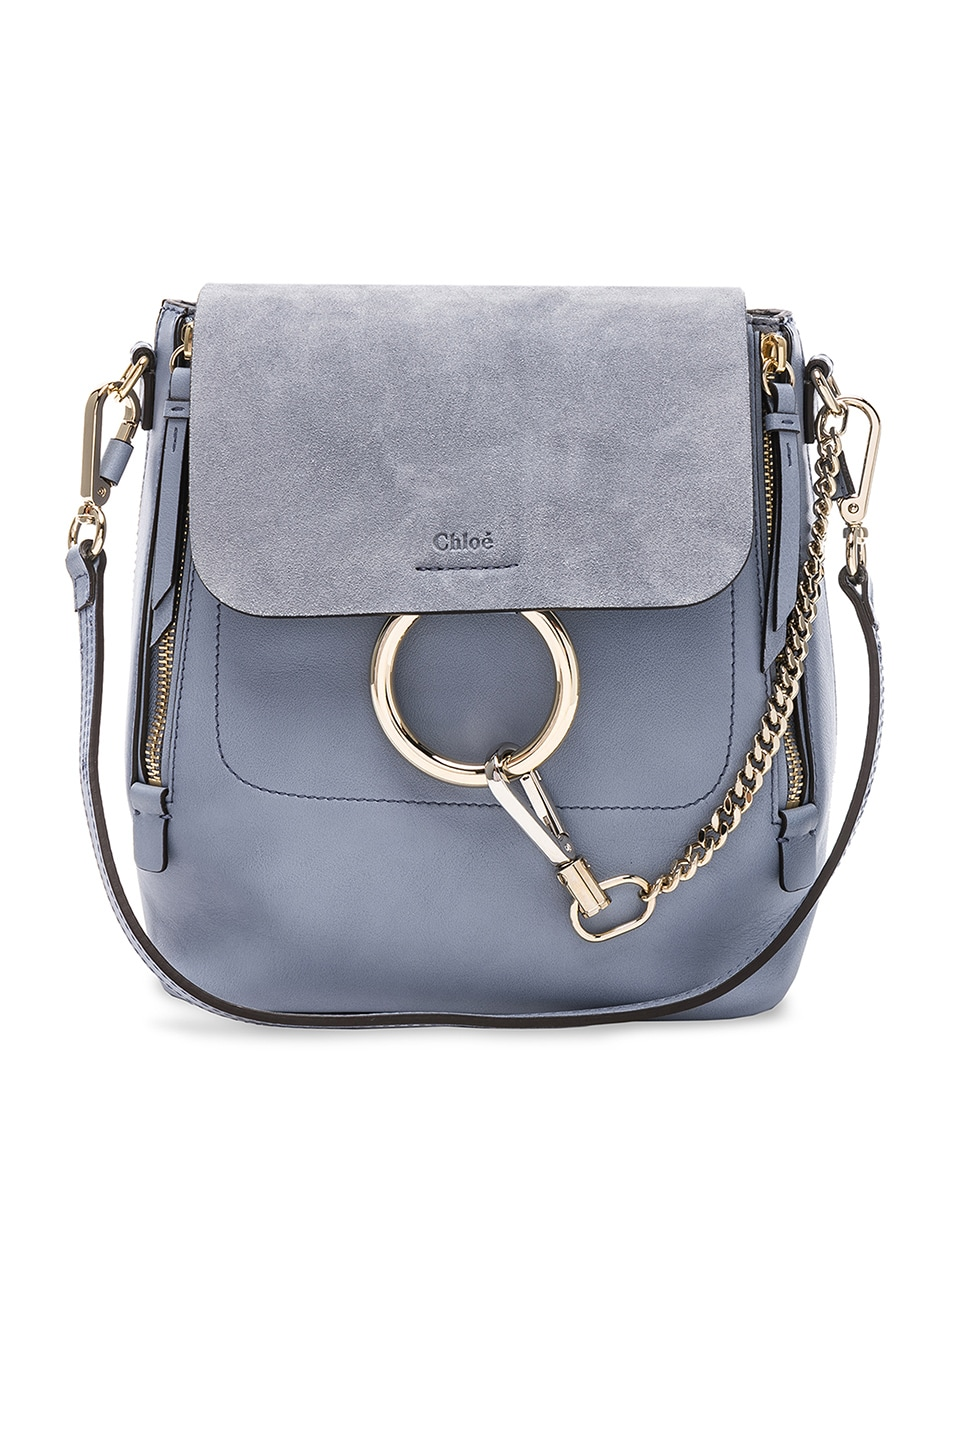 44622ac1b2bc Image 1 of Chloe Small Faye Backpack Calfskin & Suede in Washed Blue